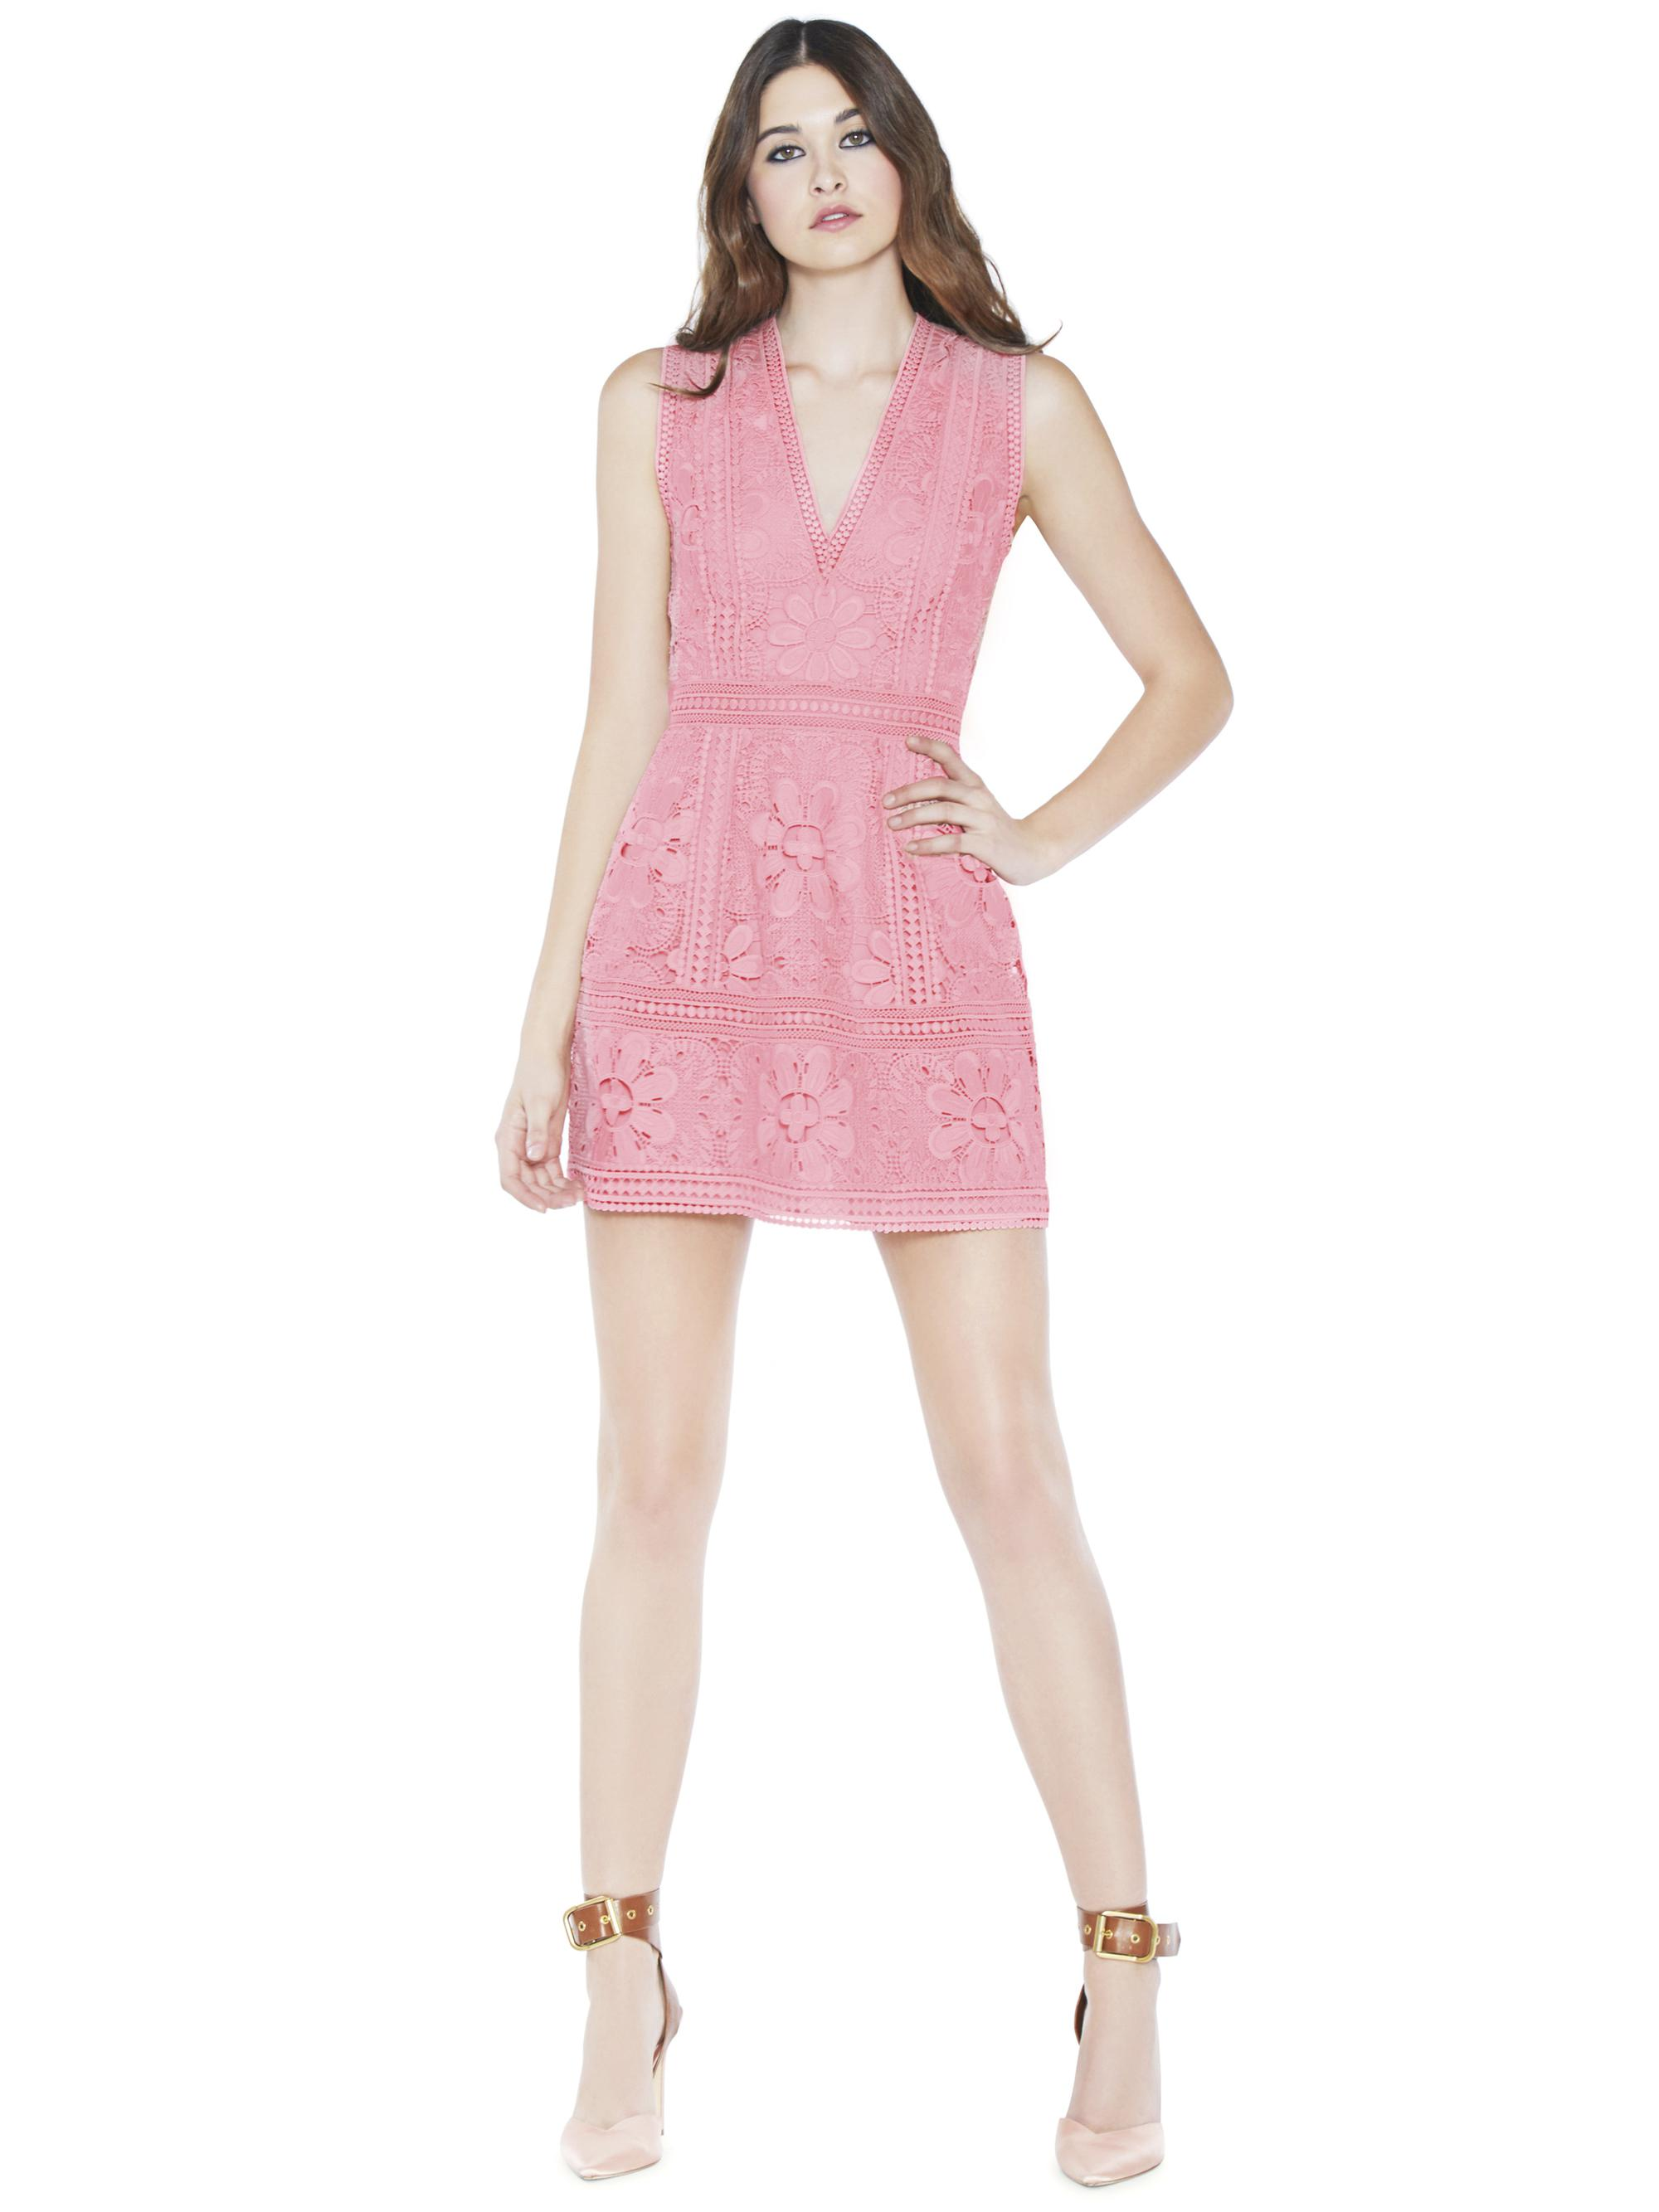 Alice + Olivia Zula Lace Party Dress in Pink